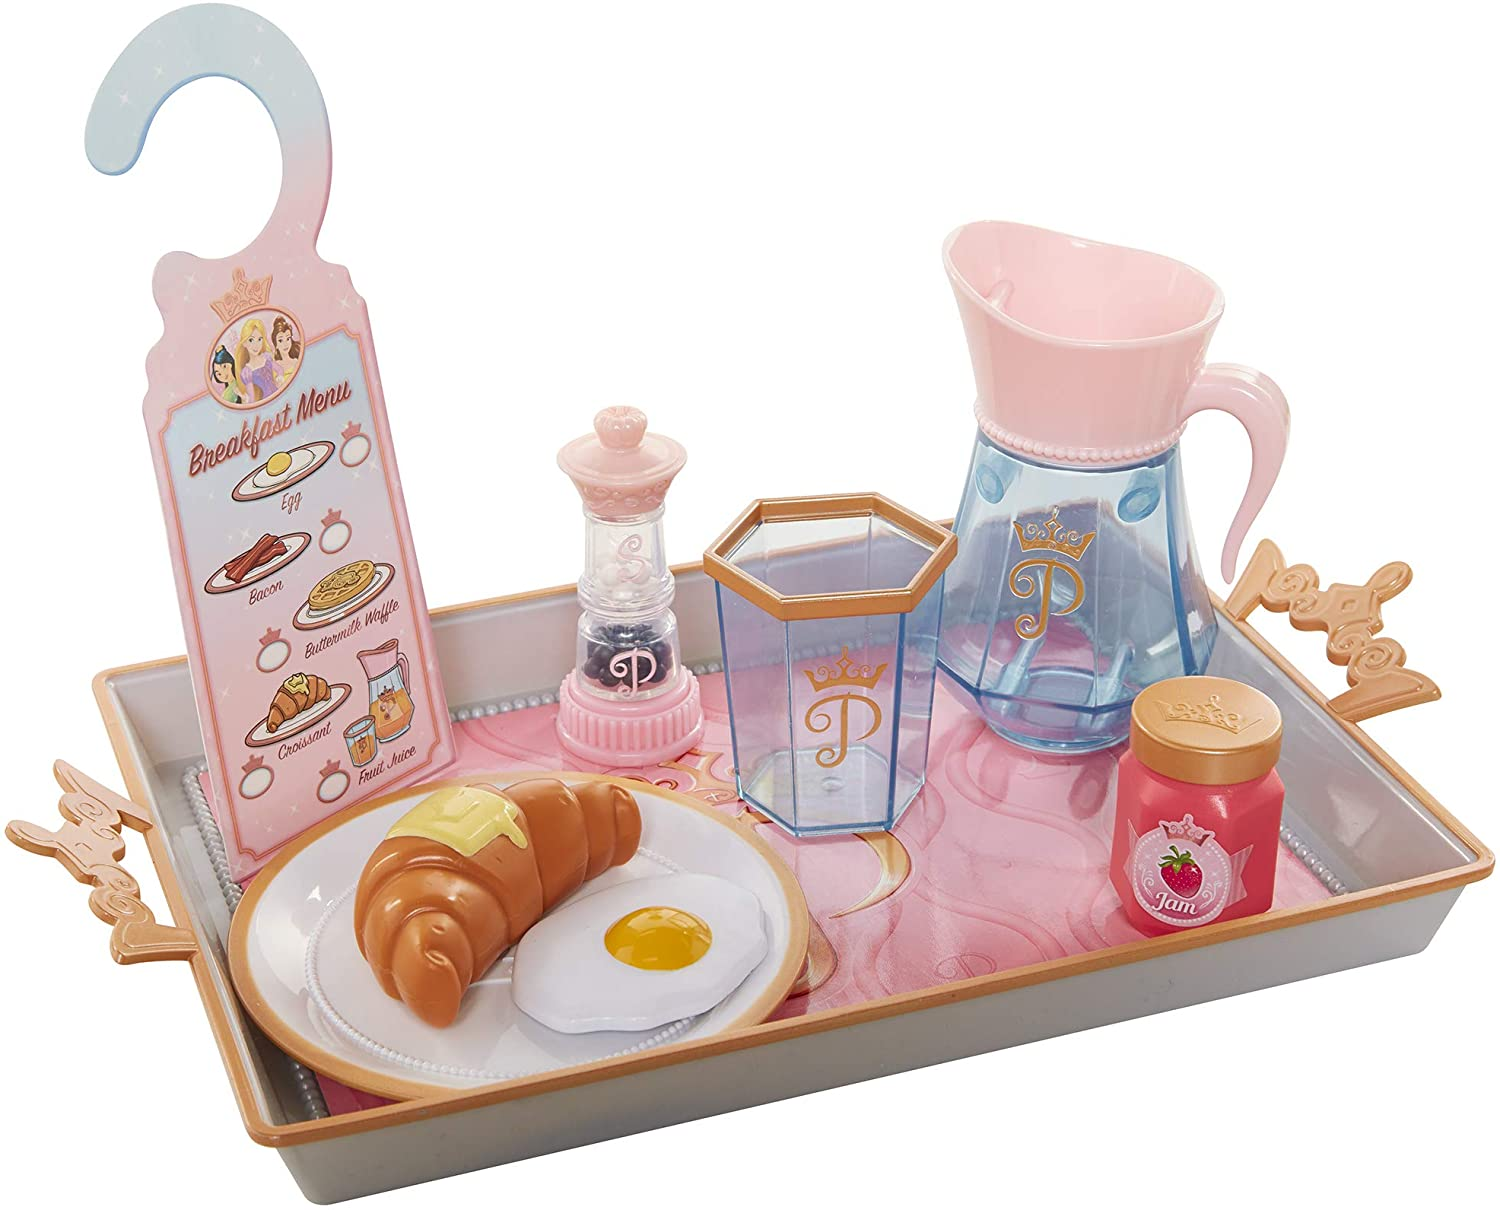 Disney Princess Style Collection Room Service Pretend Play Toy Set - with Serving Tray, Plate Cover, Pitcher & More for A Great Pretend Travel Experience - Girls Ages 3+